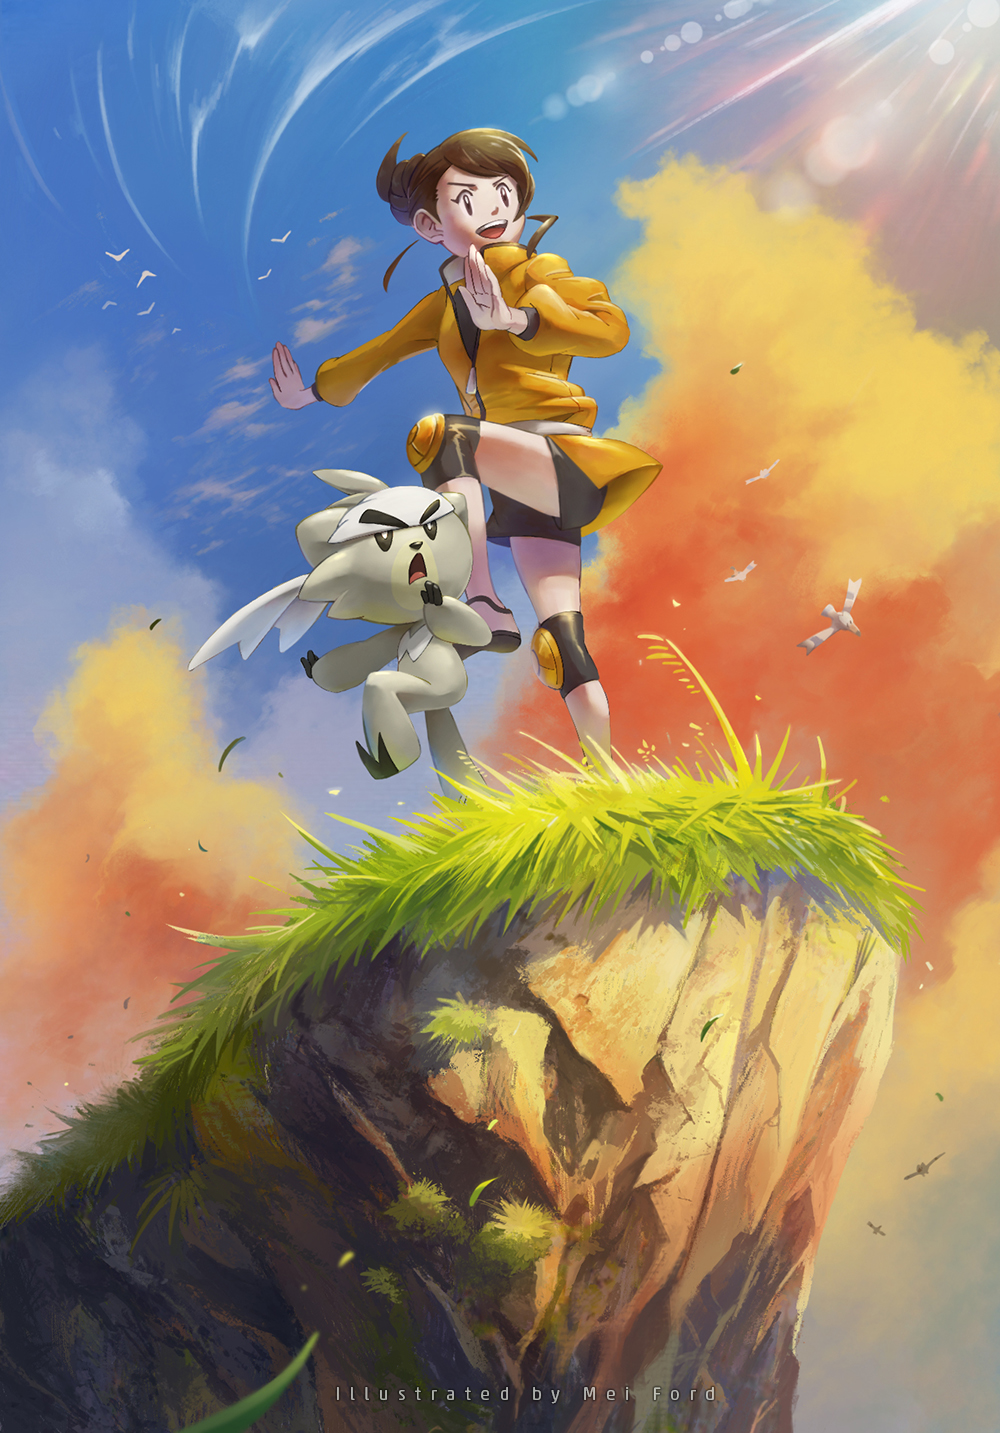 1girl artist_name bird black_shirt brown_hair cliff clouds commentary_request day from_below gen_3_pokemon gen_8_pokemon gloria_(pokemon) golden_boden grass highres jacket knee_pads kubfu legendary_pokemon looking_to_the_side master_dojo_uniform open_mouth outdoors pokemon pokemon_(creature) pokemon_(game) pokemon_swsh sash shirt shoes shorts sky smile standing standing_on_one_leg teeth tongue watermark wingull yellow_jacket zipper_pull_tab